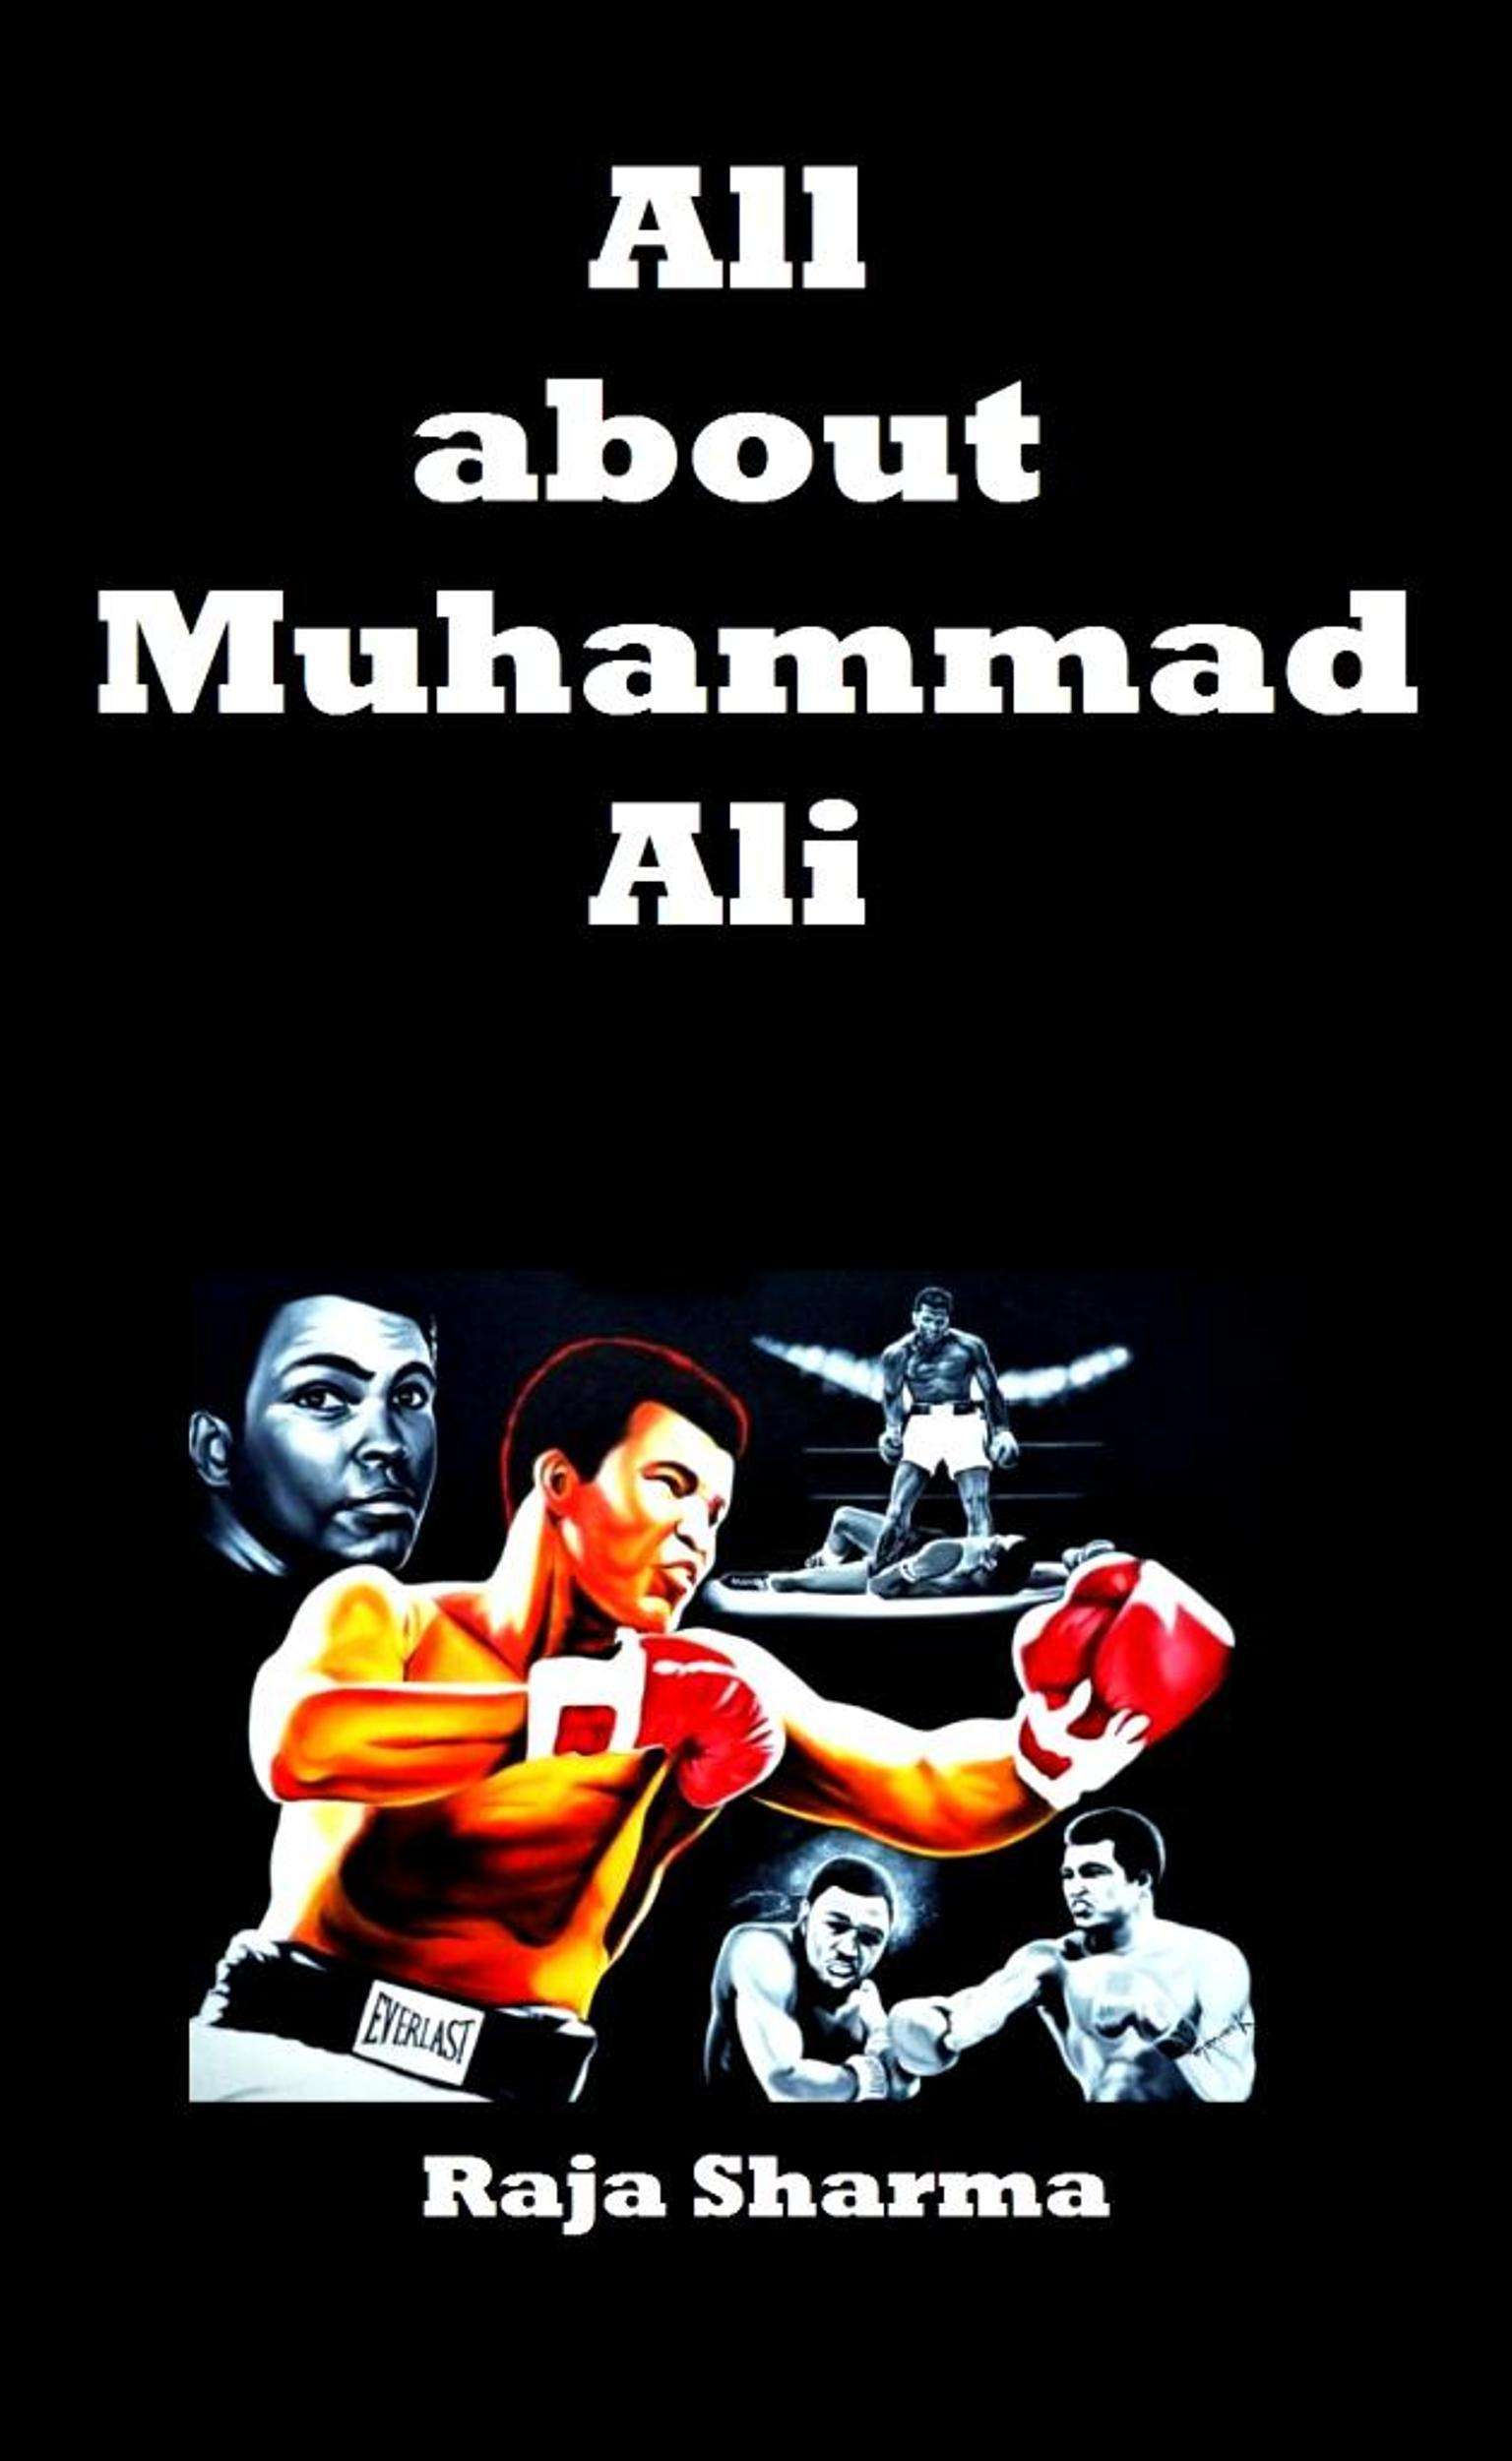 All about Muhammad Ali